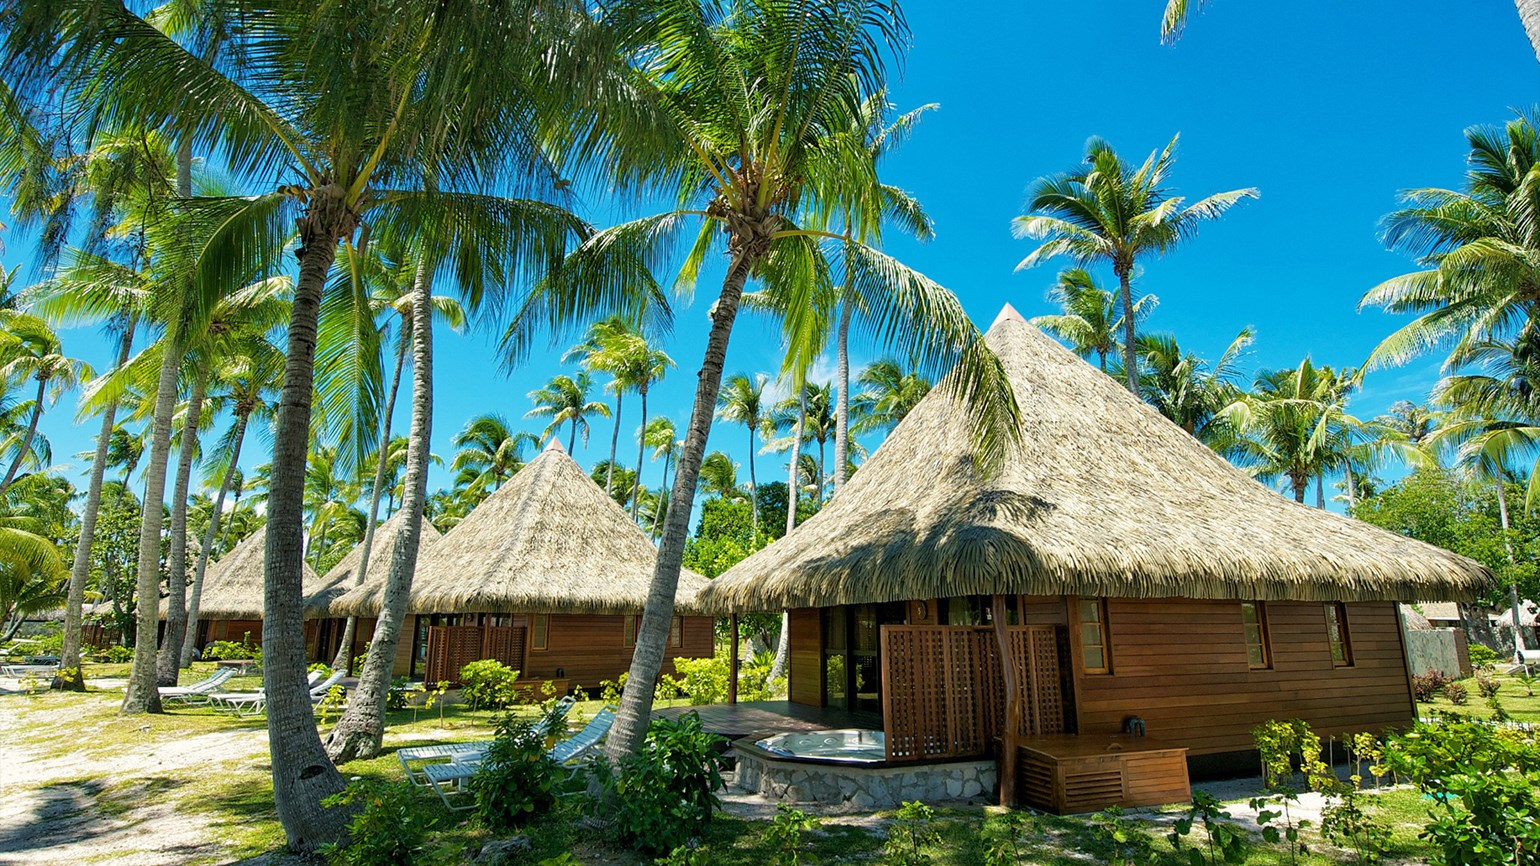 French Polynesia tour, from $1,699